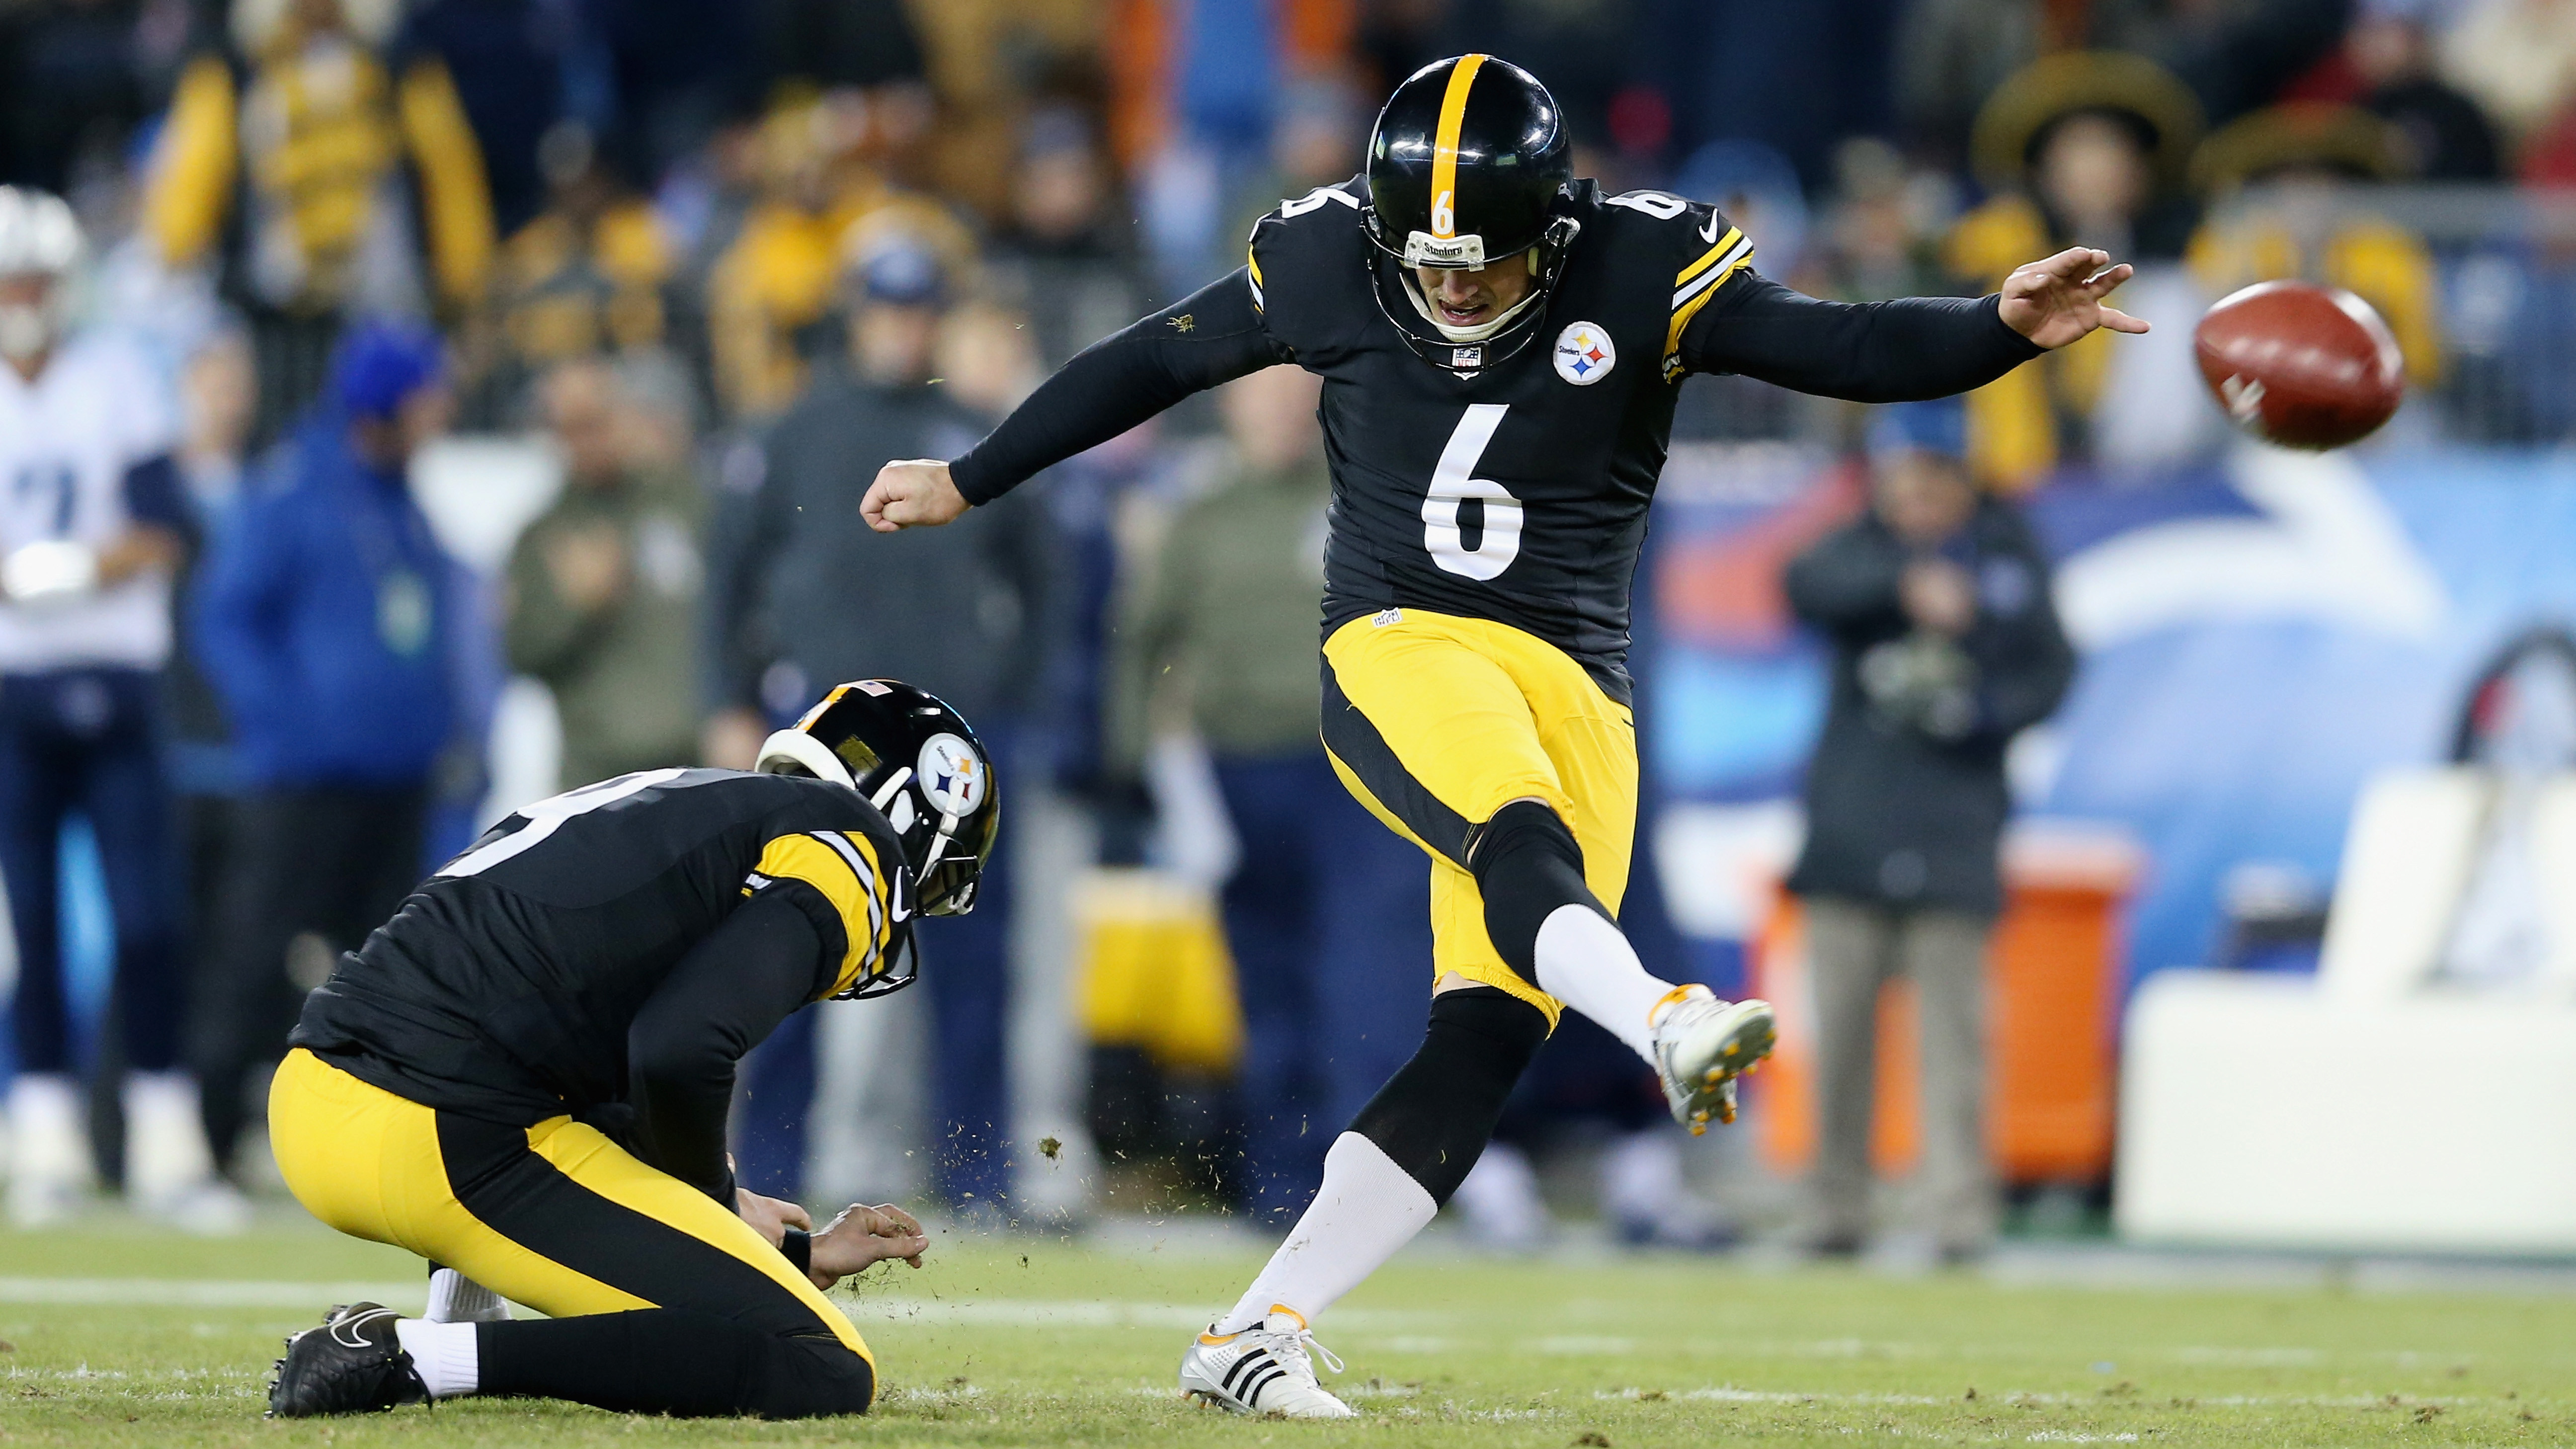 5e40e9acb ... Jersey - 69.99 Pittsburgh Steelers Shaun Suisham tears ACL in Hall of  Fame game SI.com ...